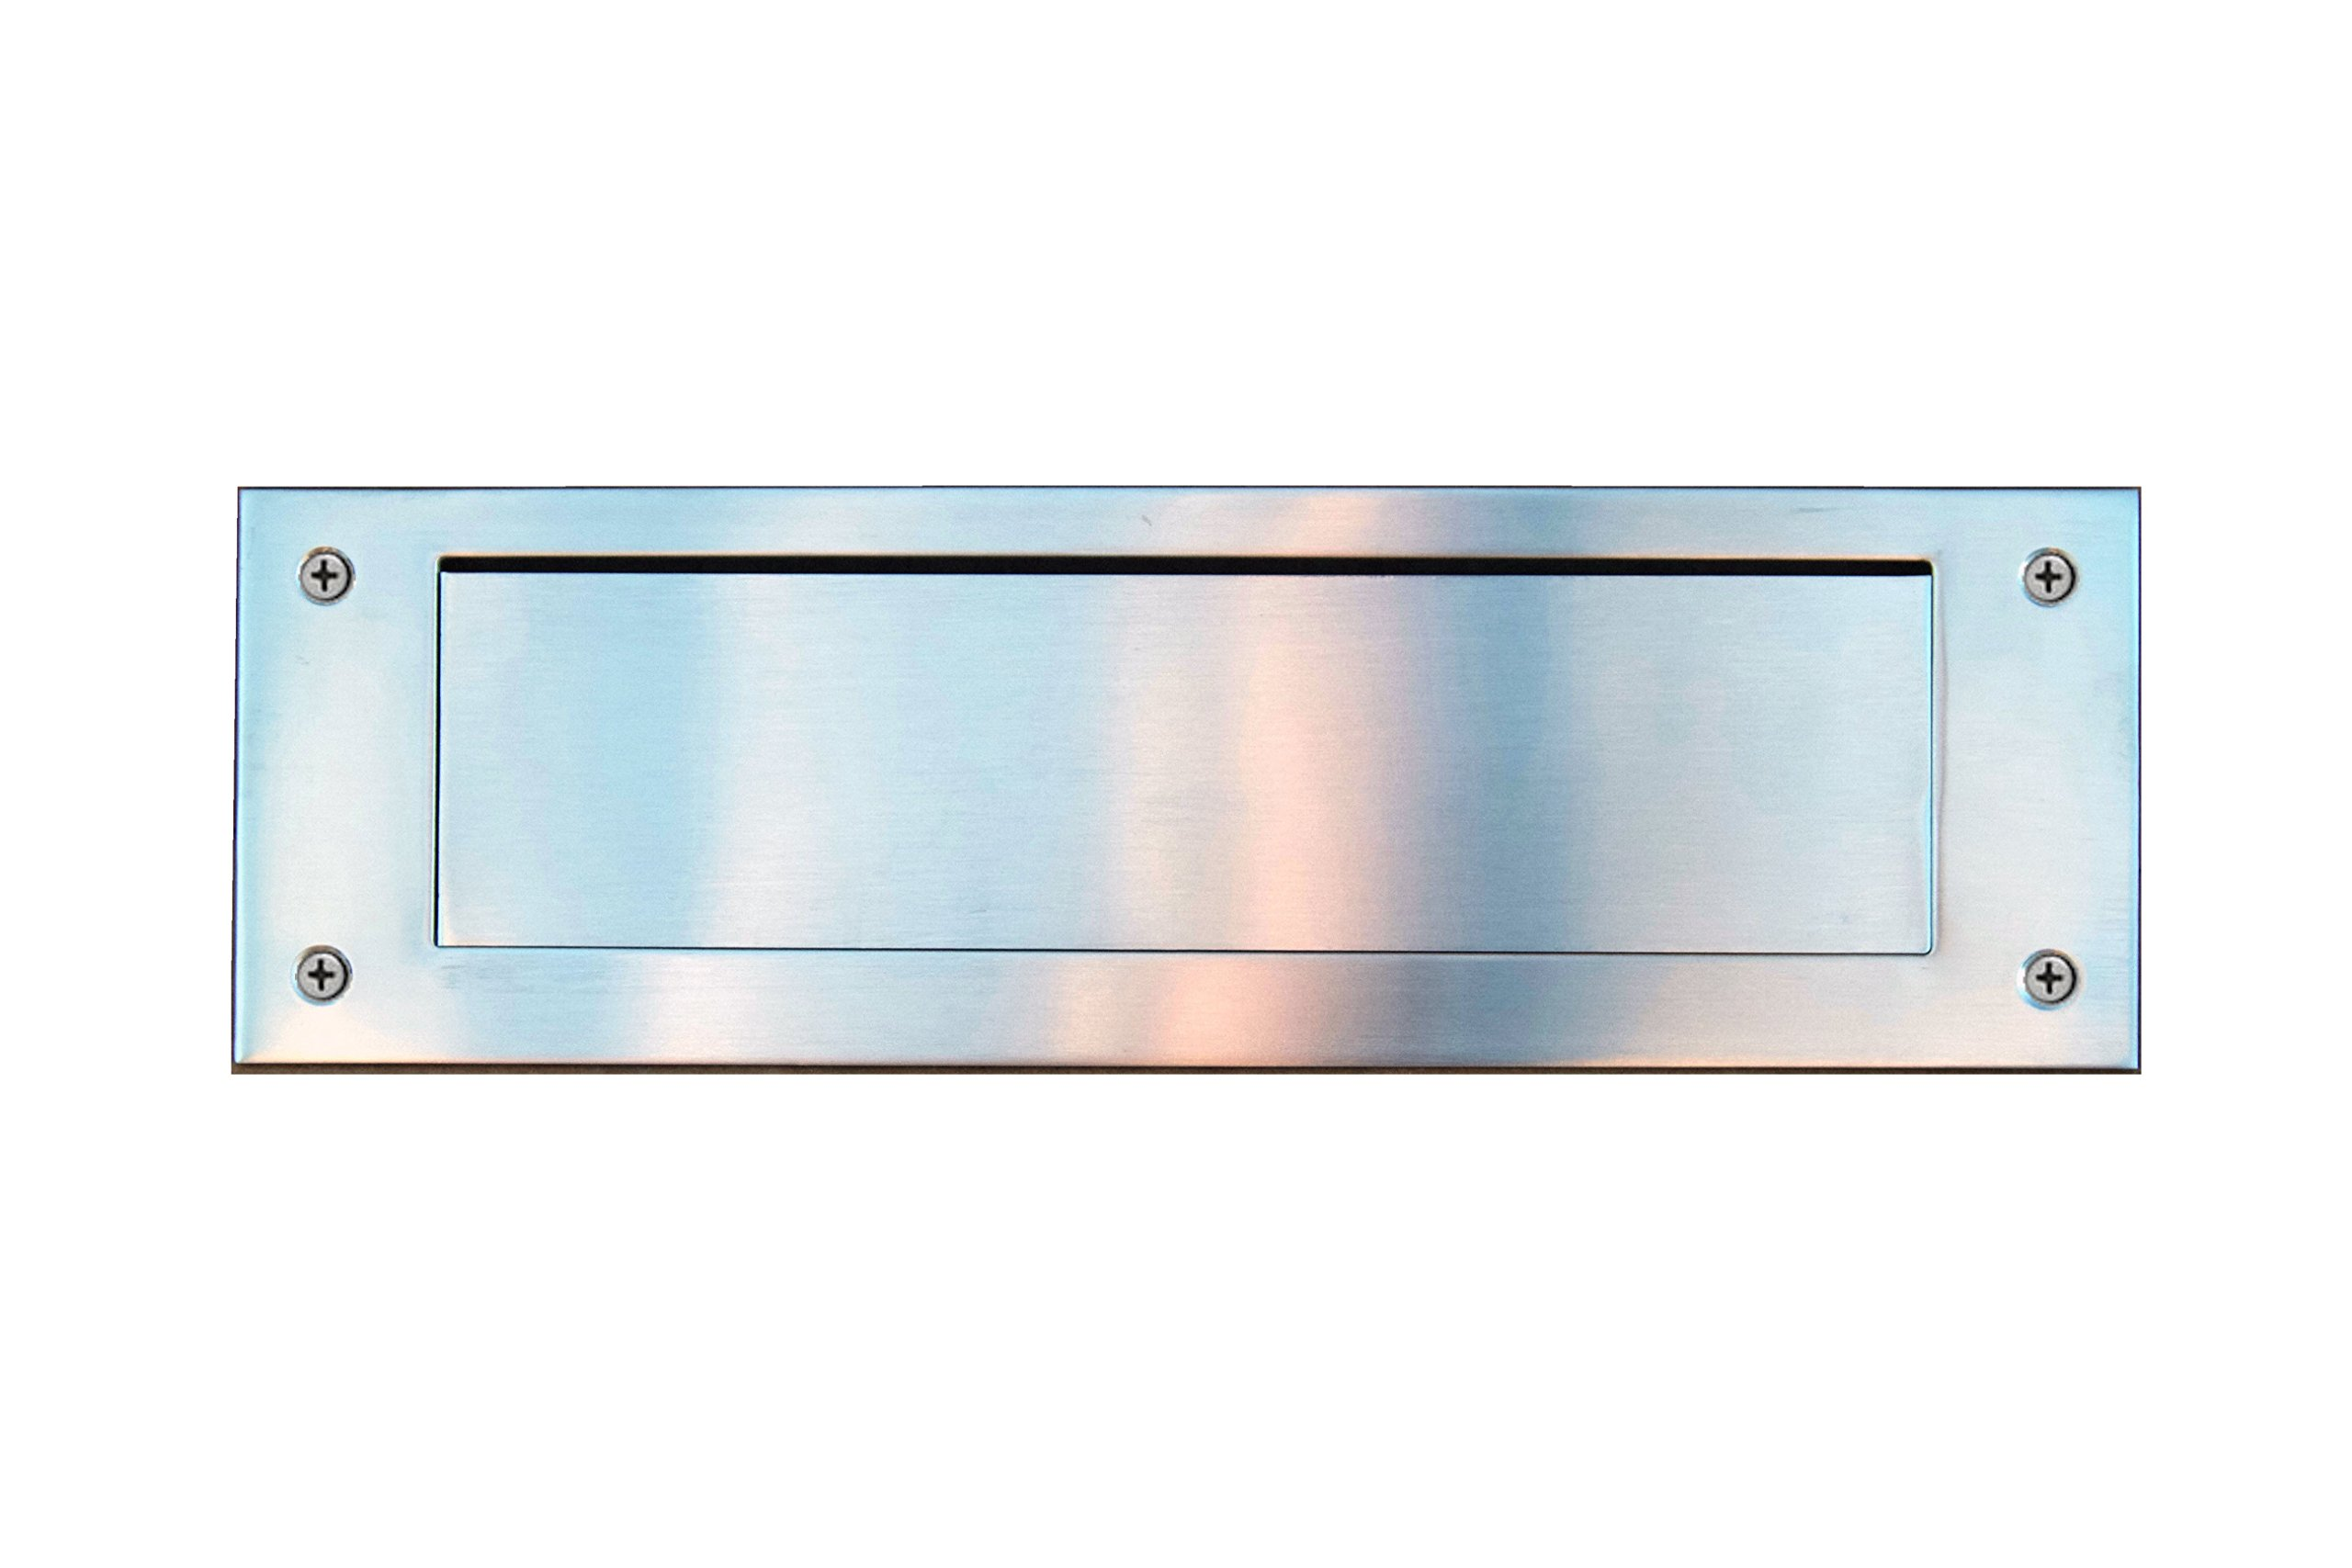 Stainless Steel Door Mail Slot (front & rear pieces), Letter Box Plate Compatible With Any Door Type, 13 in. W x 4 in. H